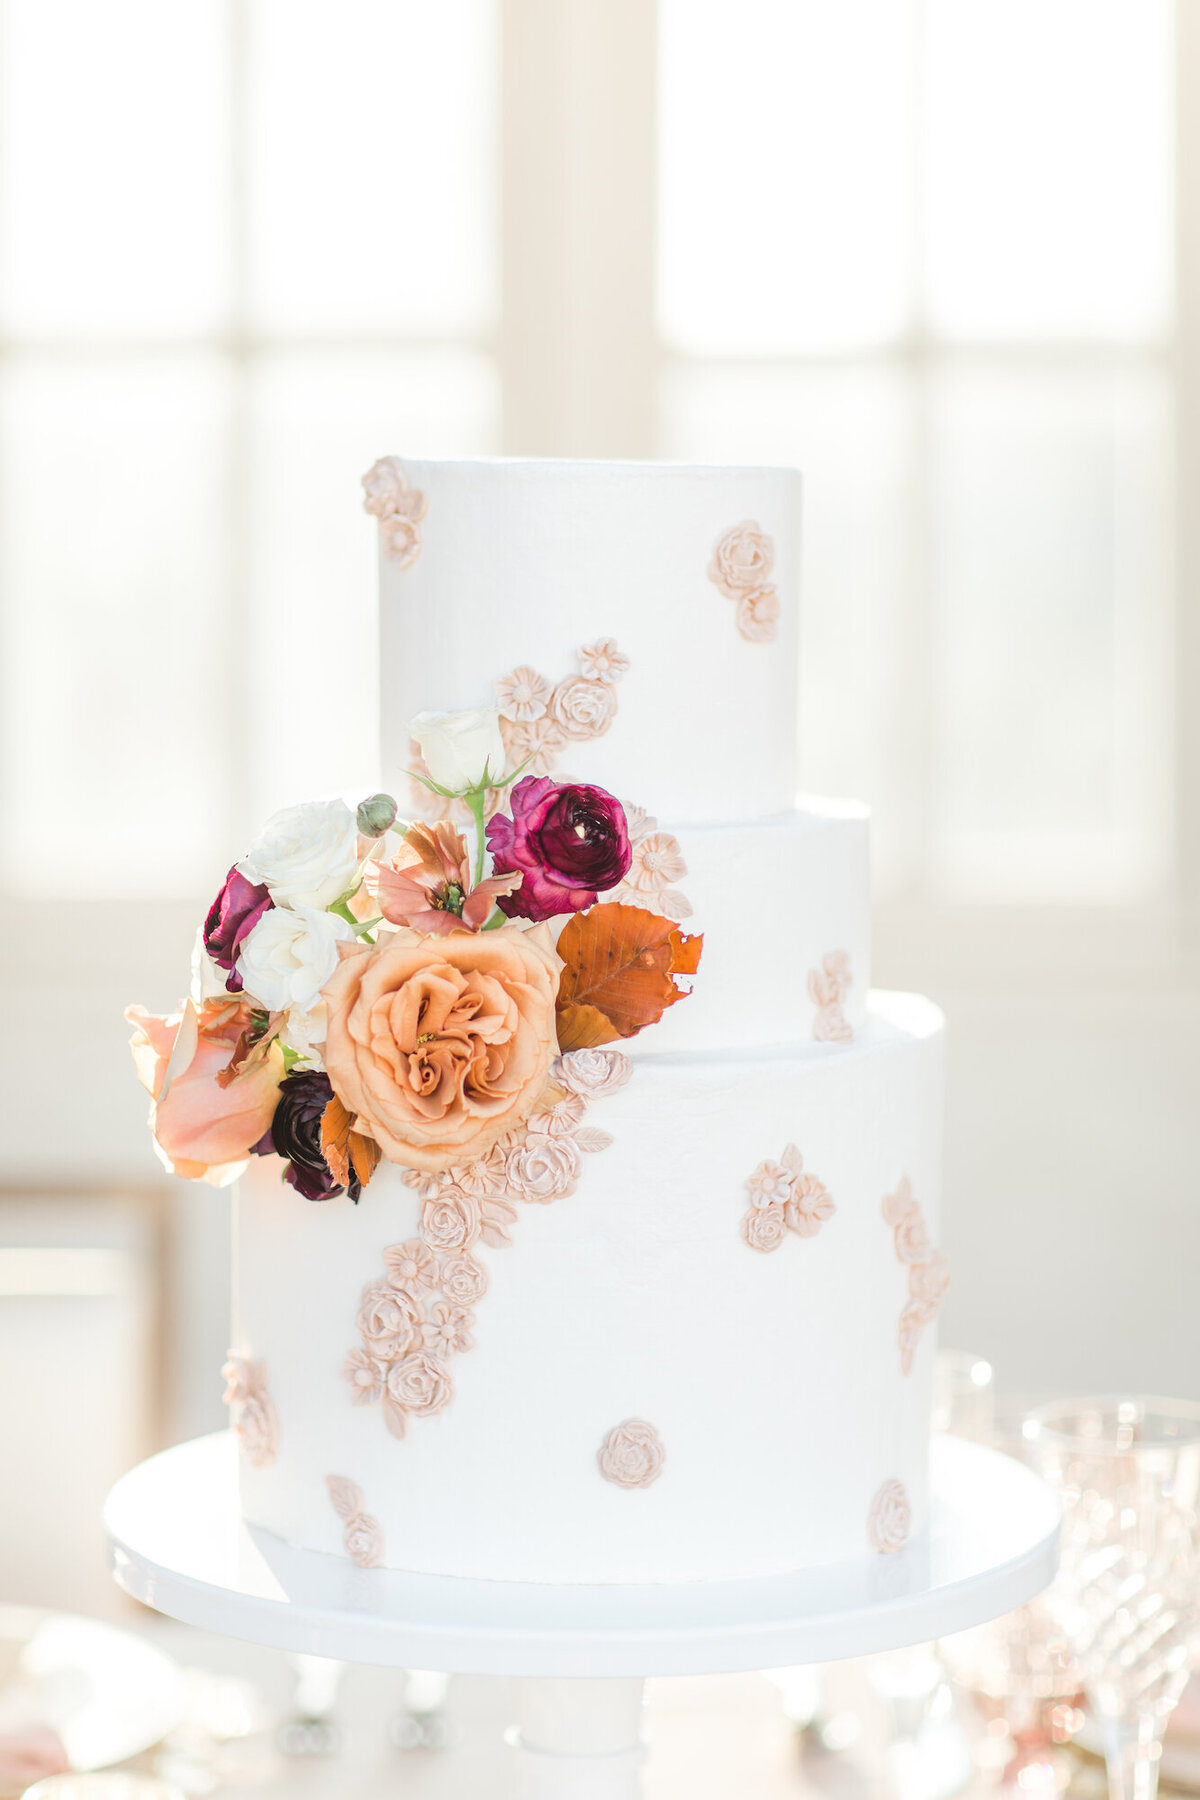 Wedding cake with lace motifs and pink and orange flowers